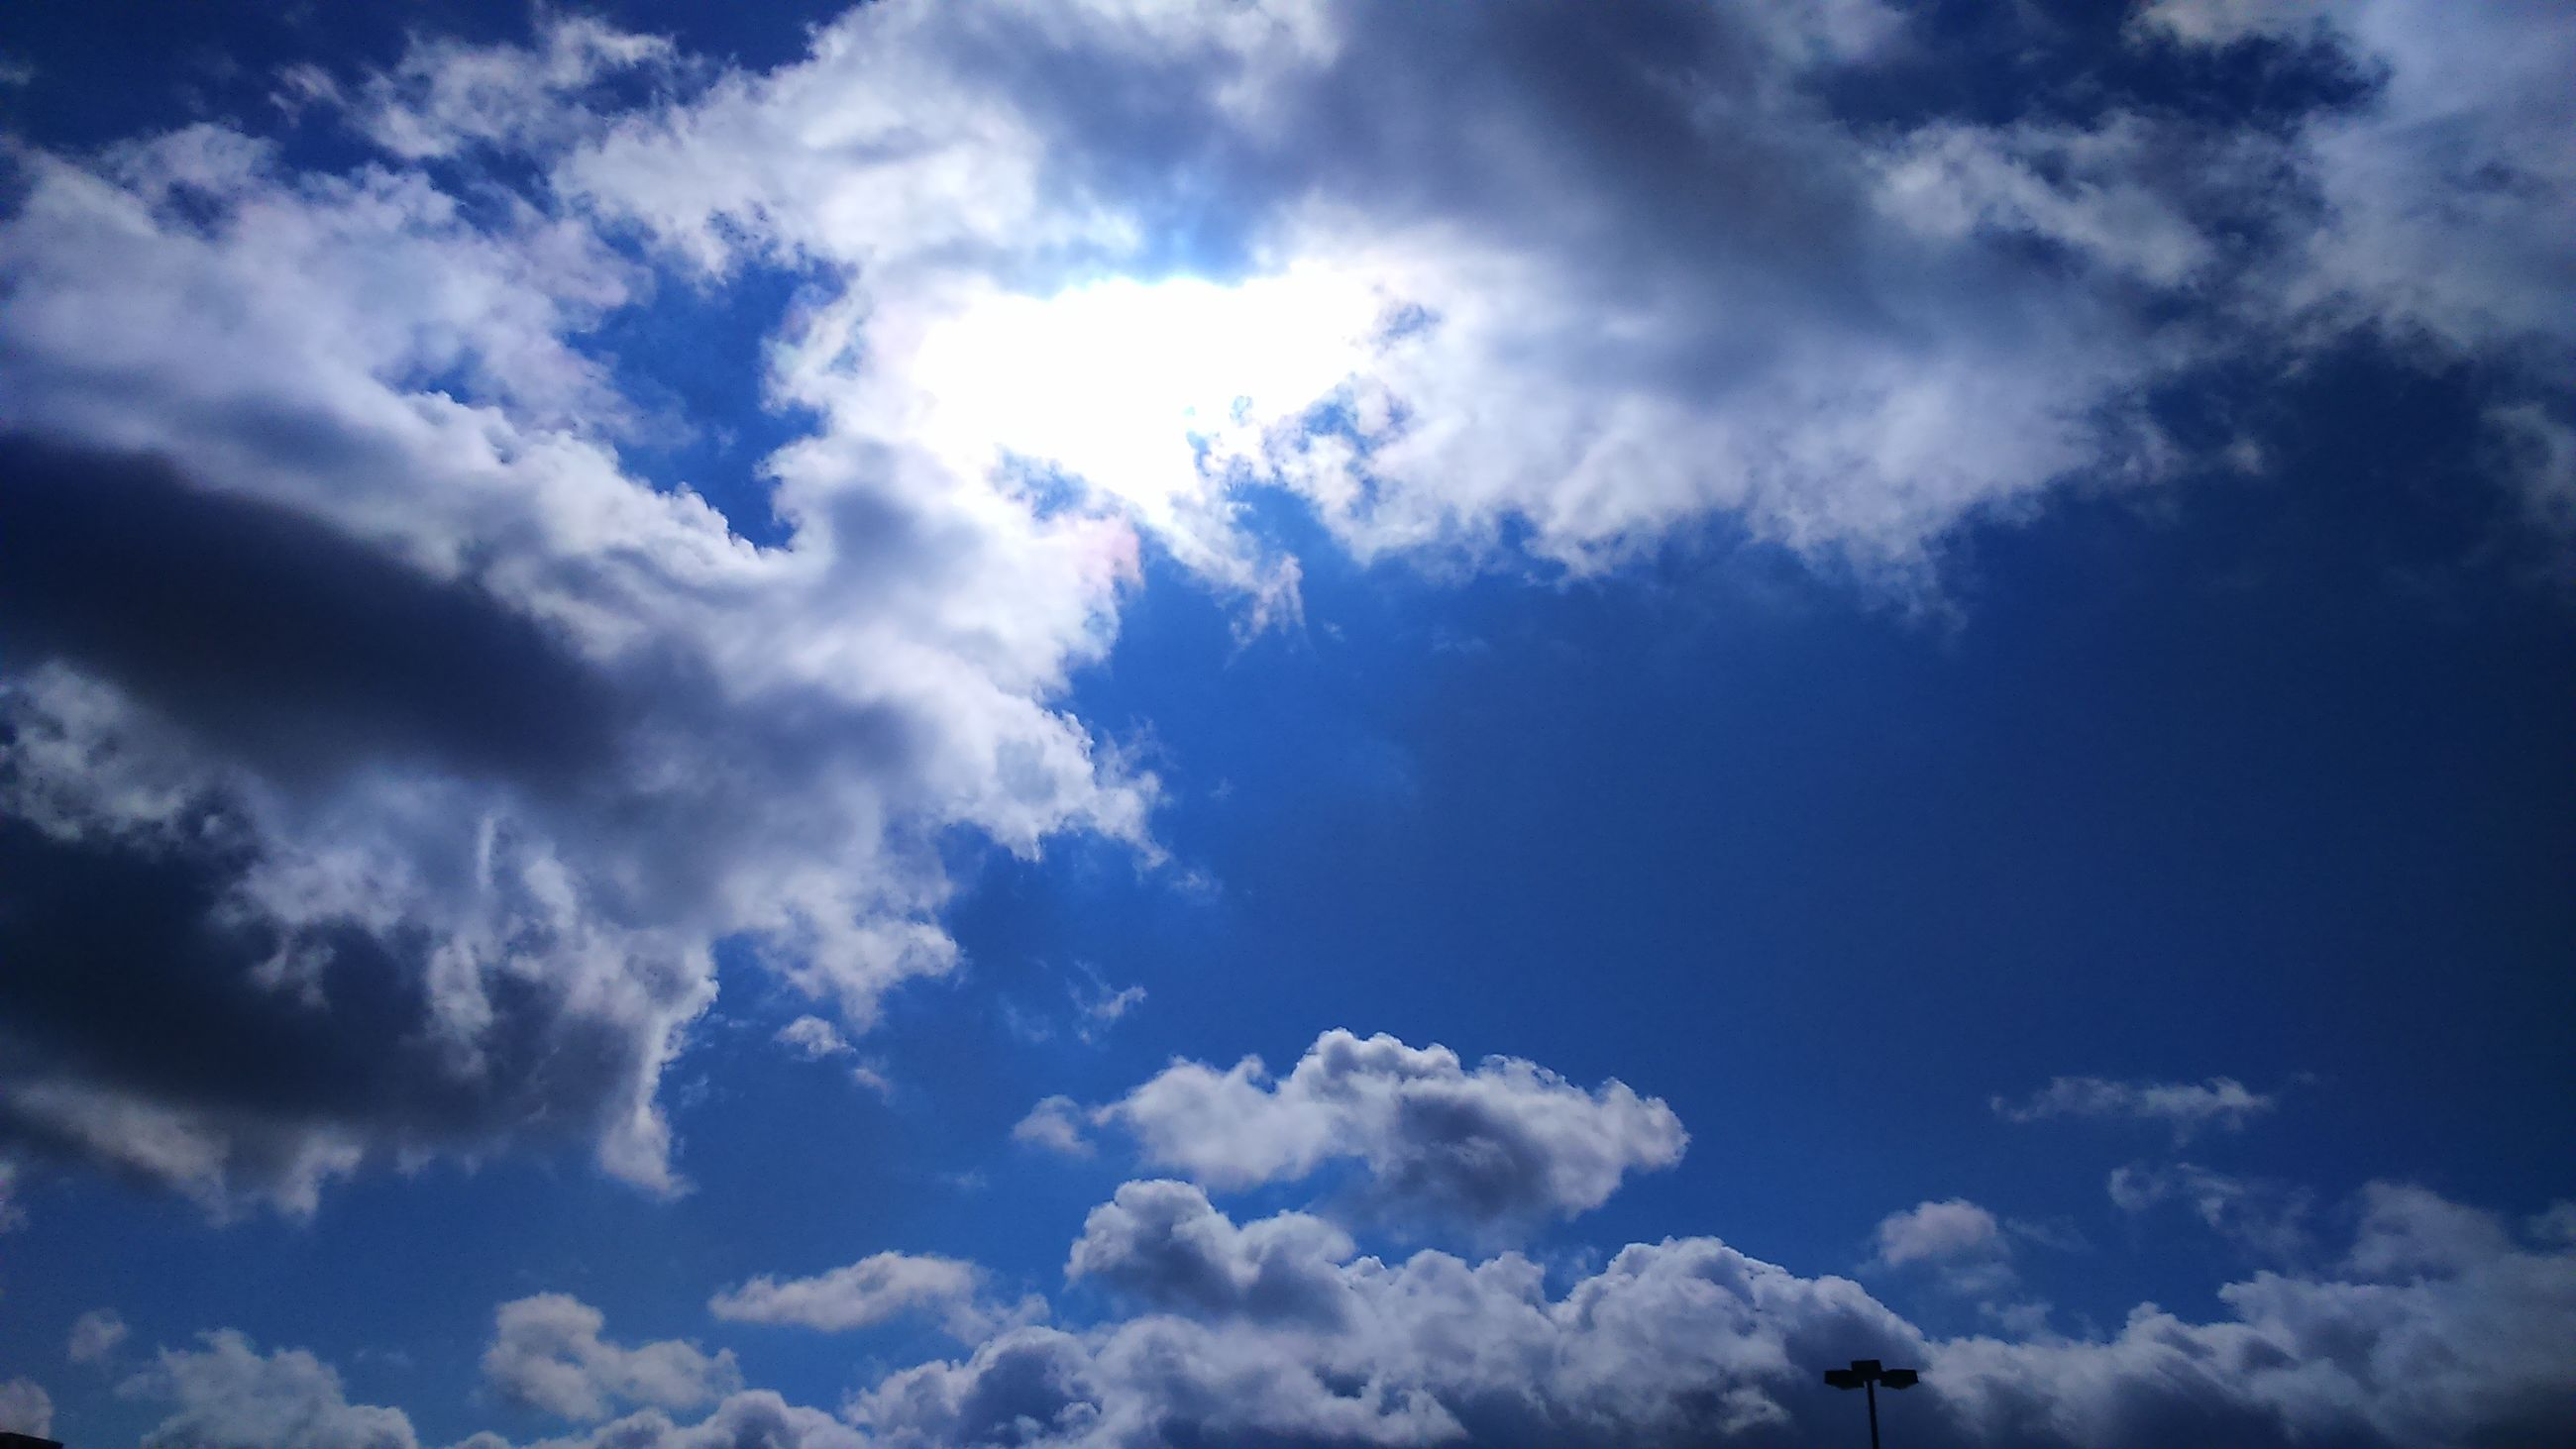 low angle view, sky, cloud - sky, sky only, blue, beauty in nature, tranquility, cloudy, nature, scenics, cloudscape, cloud, tranquil scene, backgrounds, white color, idyllic, fluffy, day, outdoors, no people